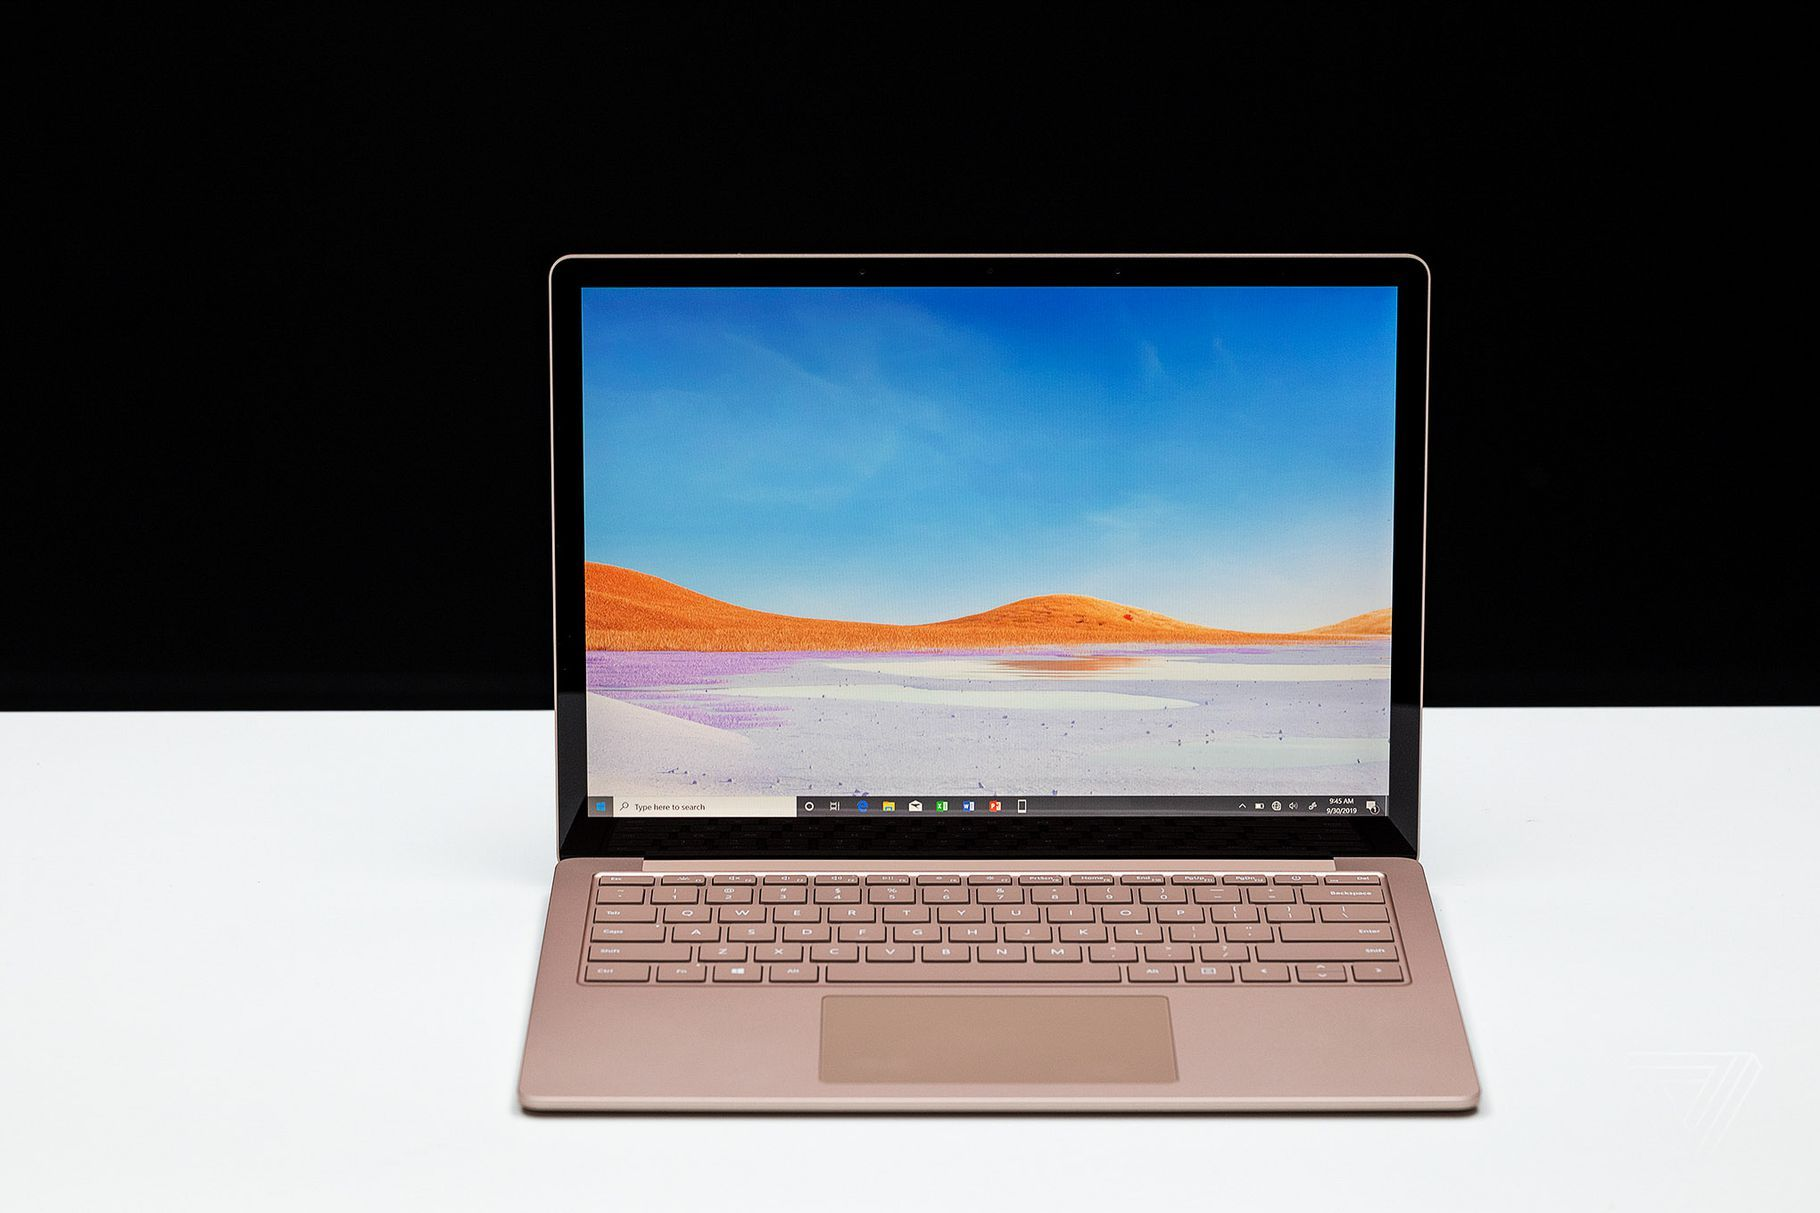 Microsoft Surface Laptop 3 13.5inch review have a normal